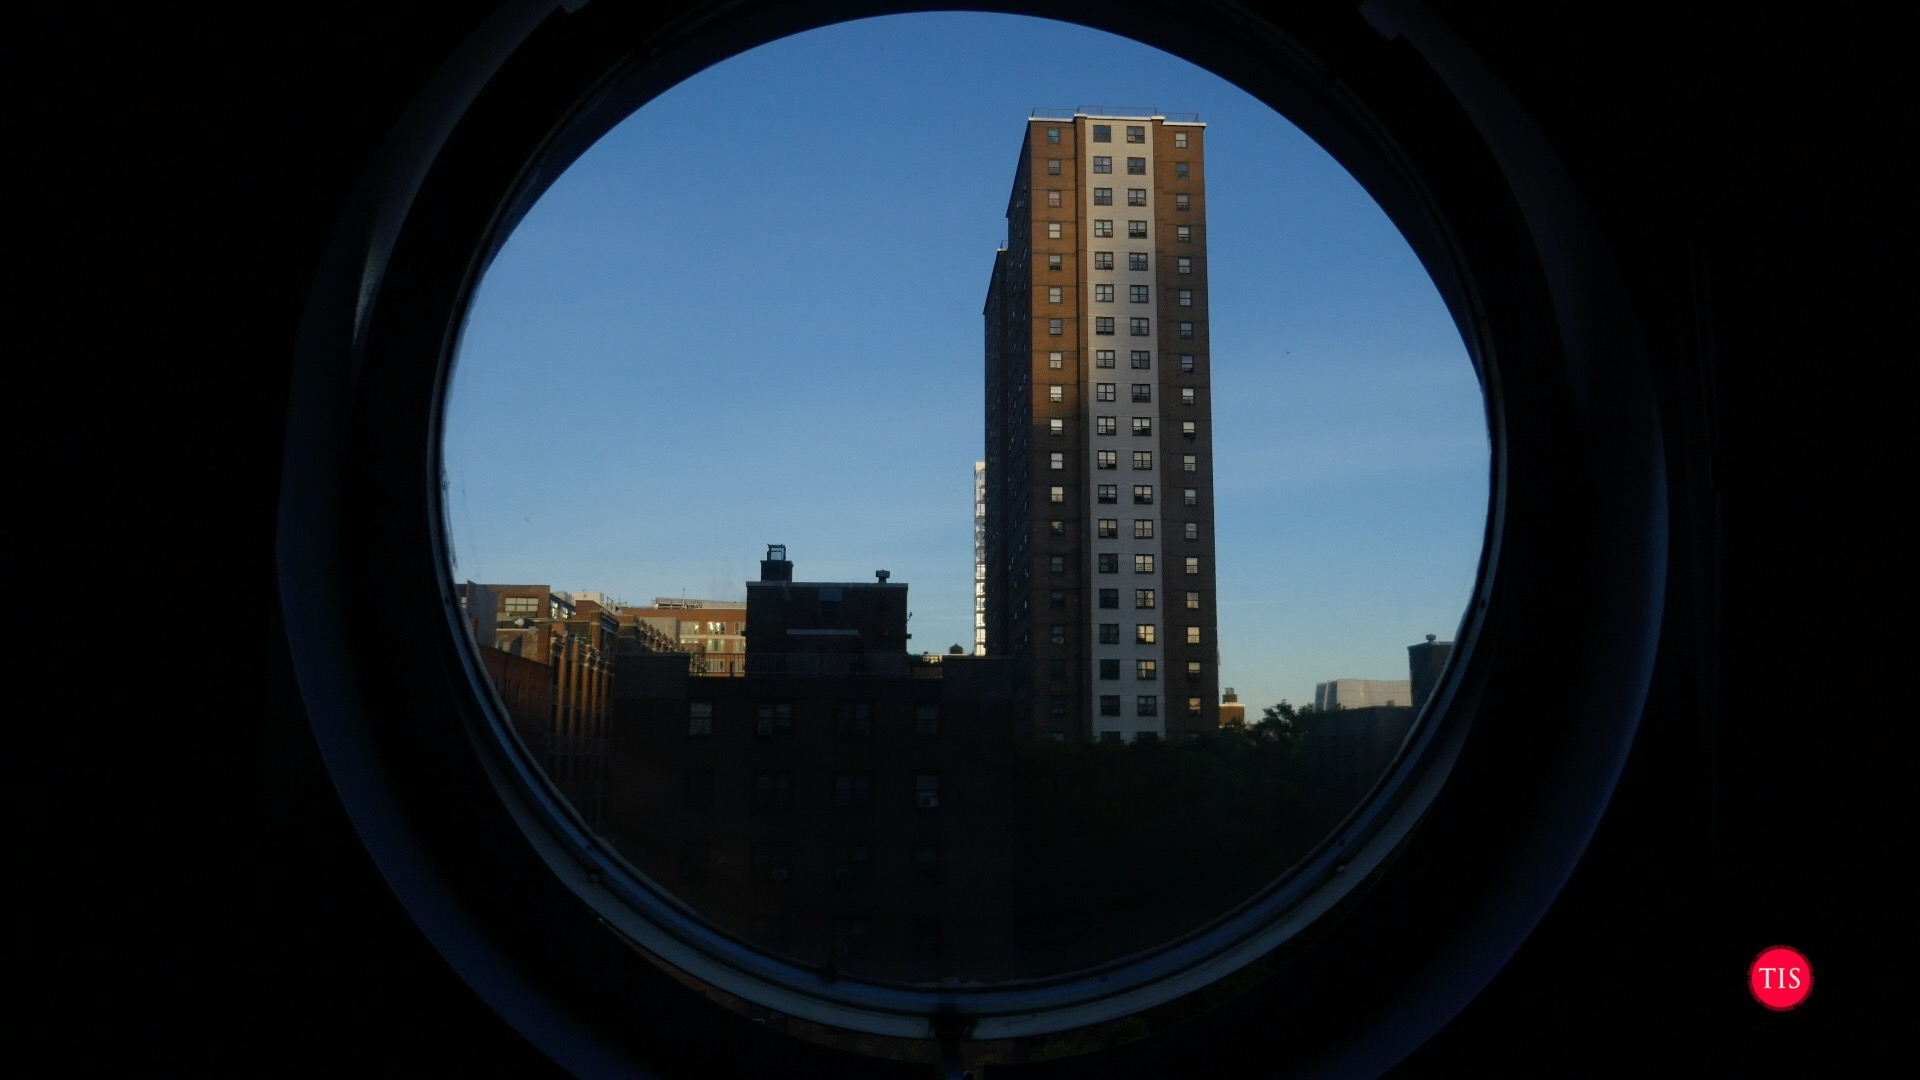 View from our room at The Maratime Hotel in NYC... The Maratime has unique port hole style windows